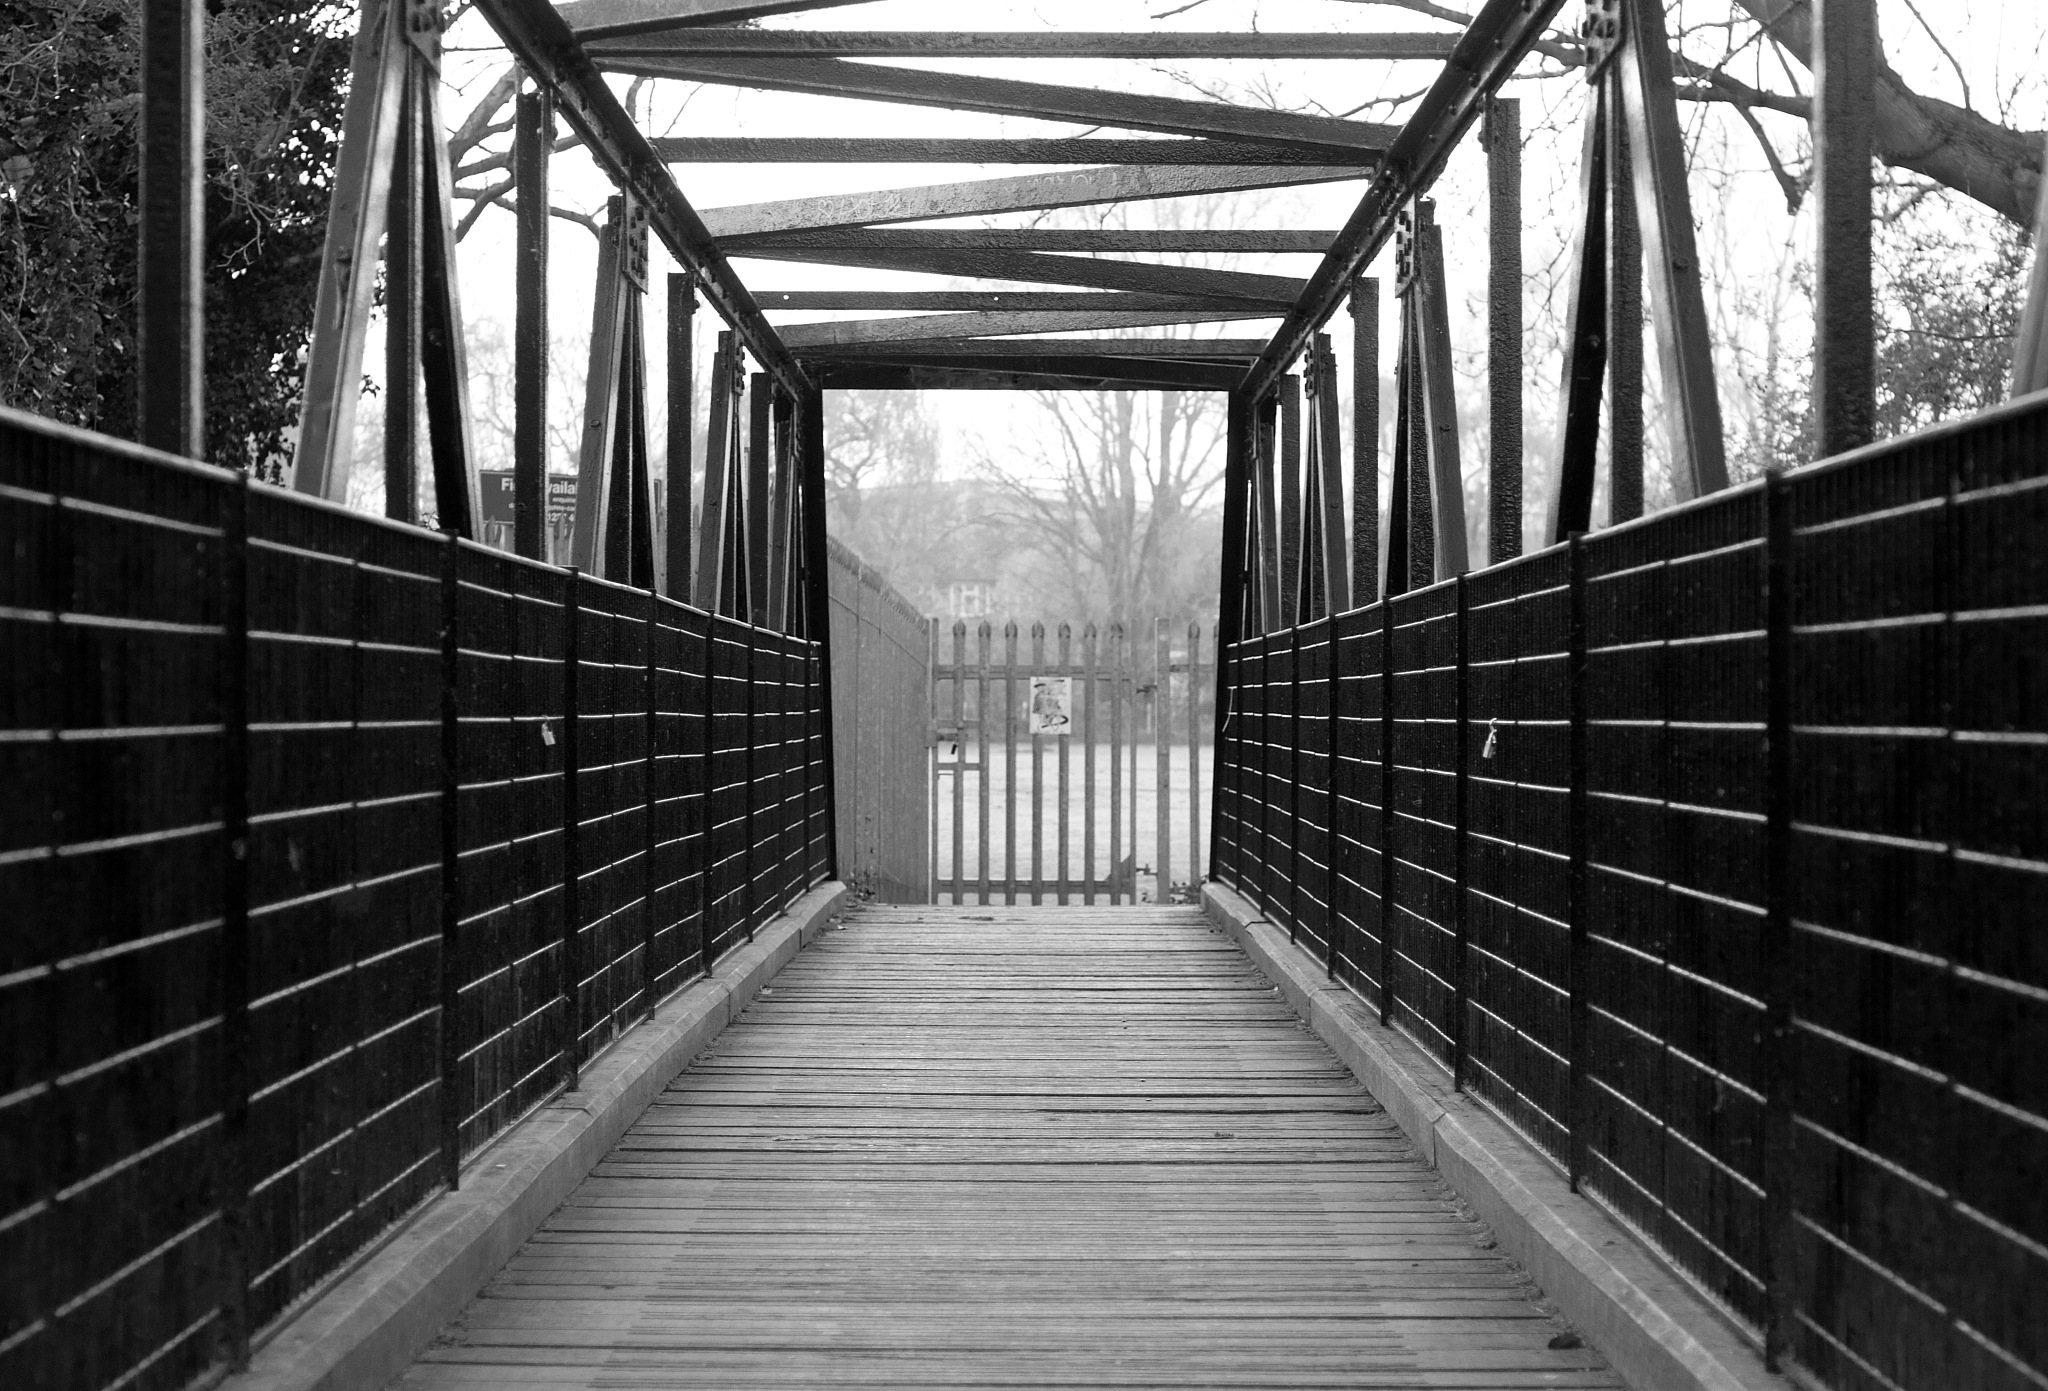 Bridge Over the River Stour by Howard Sway